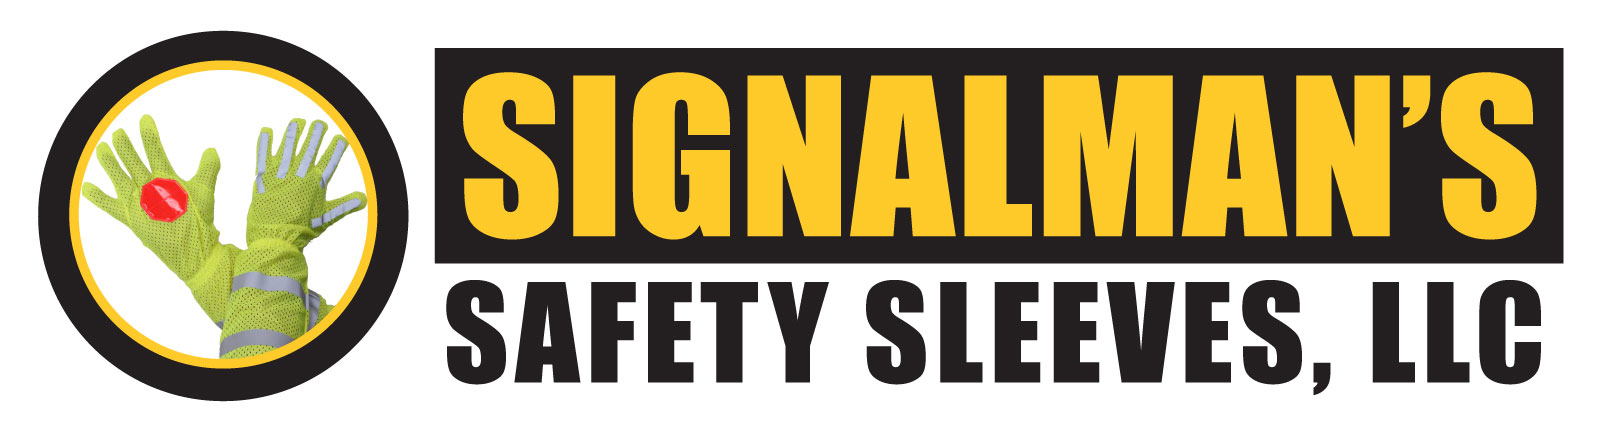 Signalman's Safety Sleeves